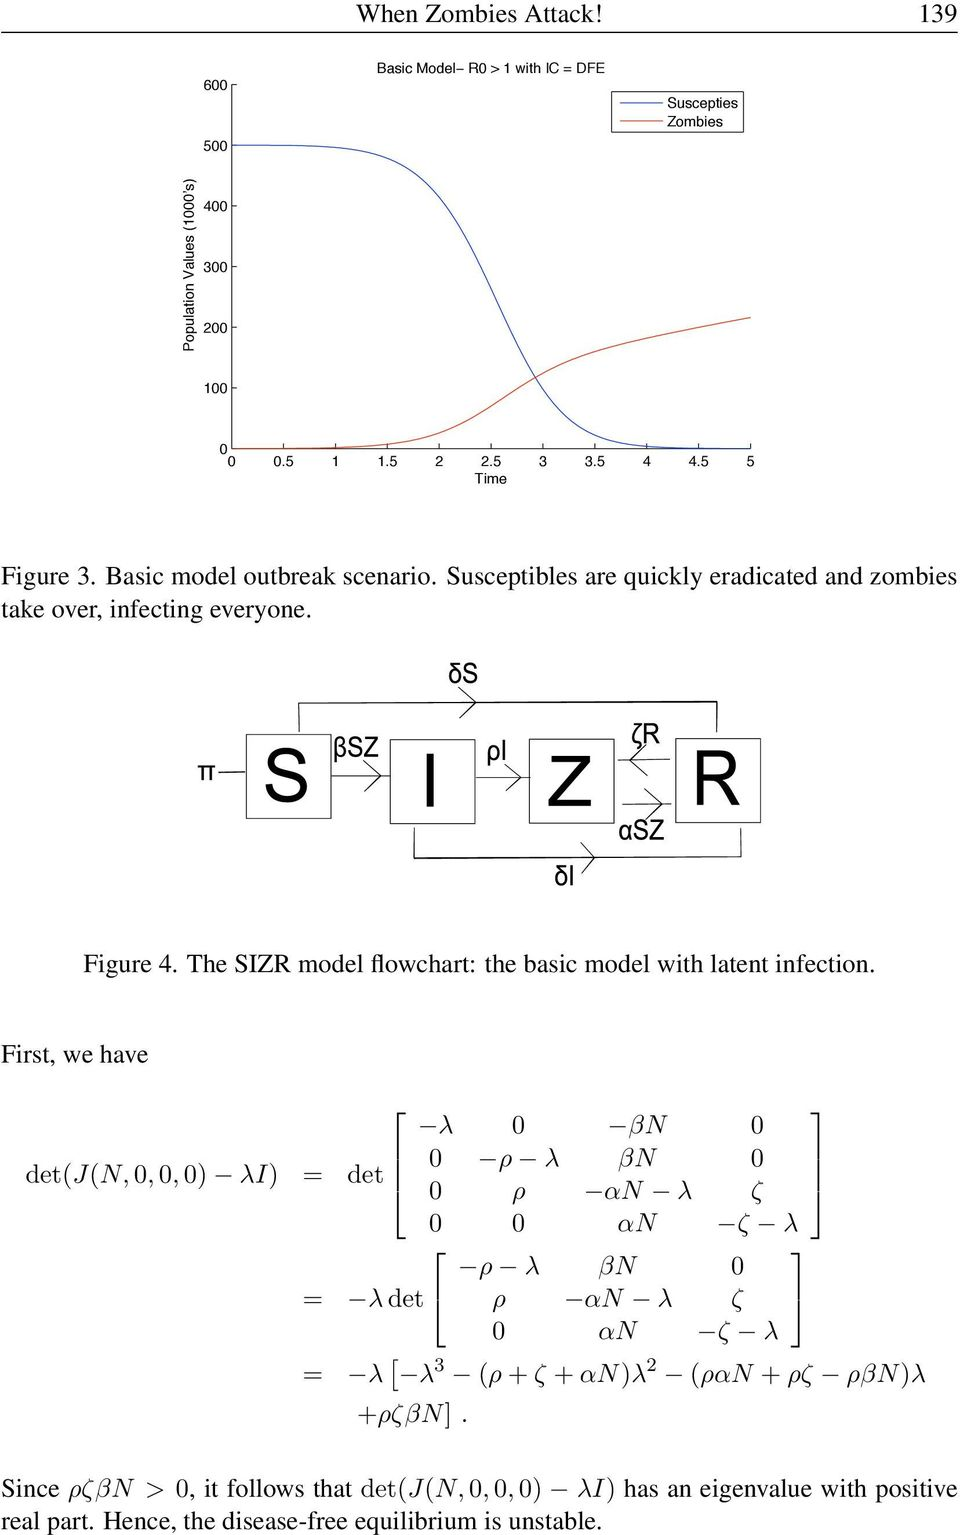 The SIZR model flowchart: the basic model with latent infection.